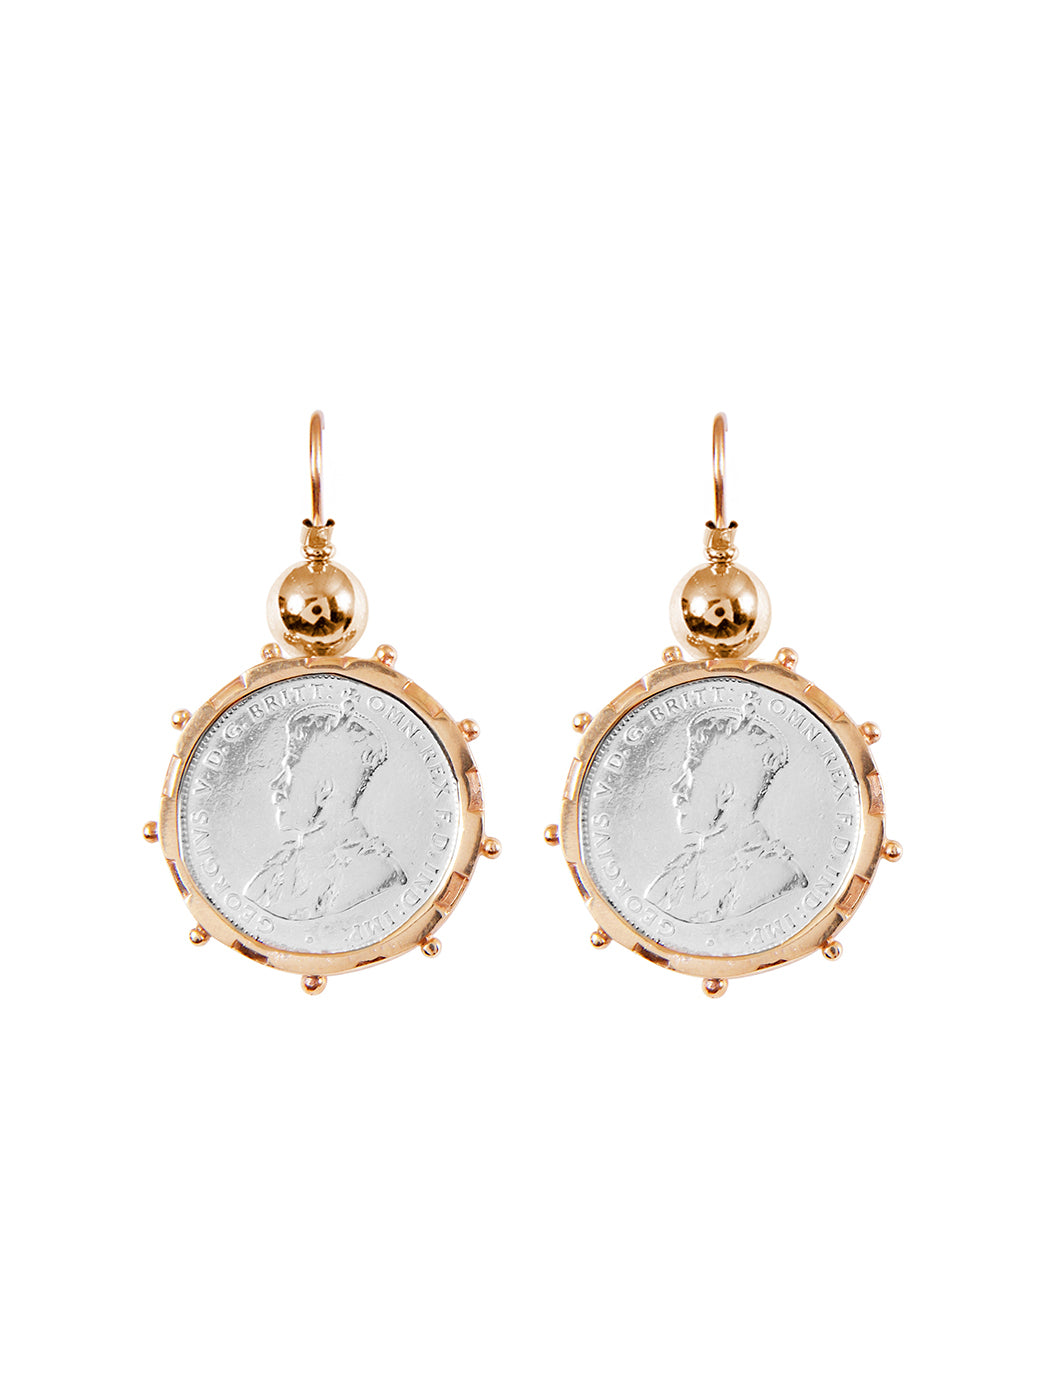 Fiorina Jewellery Gold Encased Shilling Coin Earrings Gold Highlights